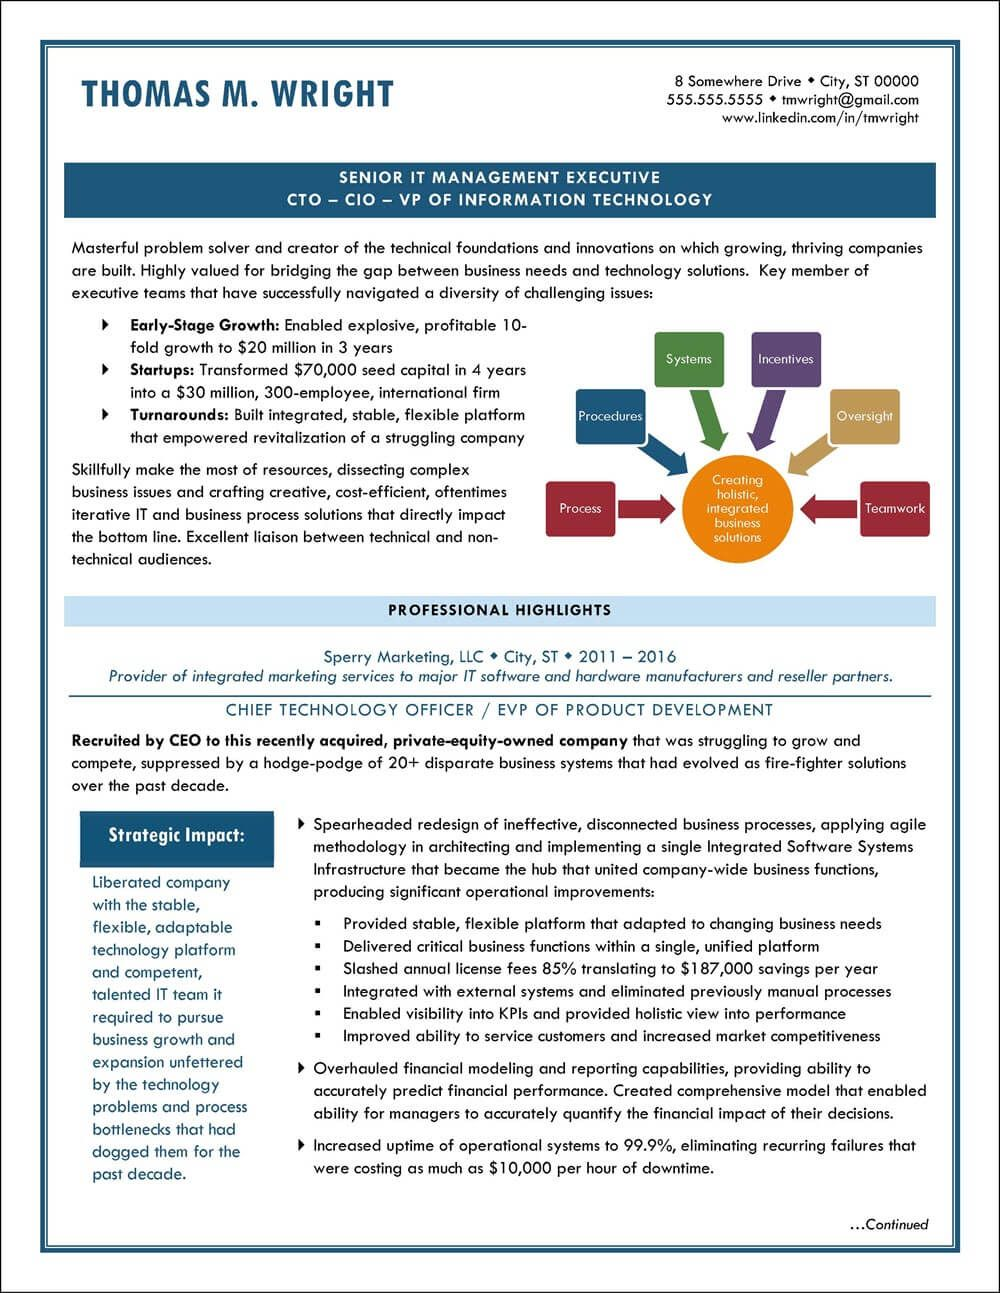 Example Executive Resume - CTO/CIO- pg1 | Work - Resumes and Cover ...